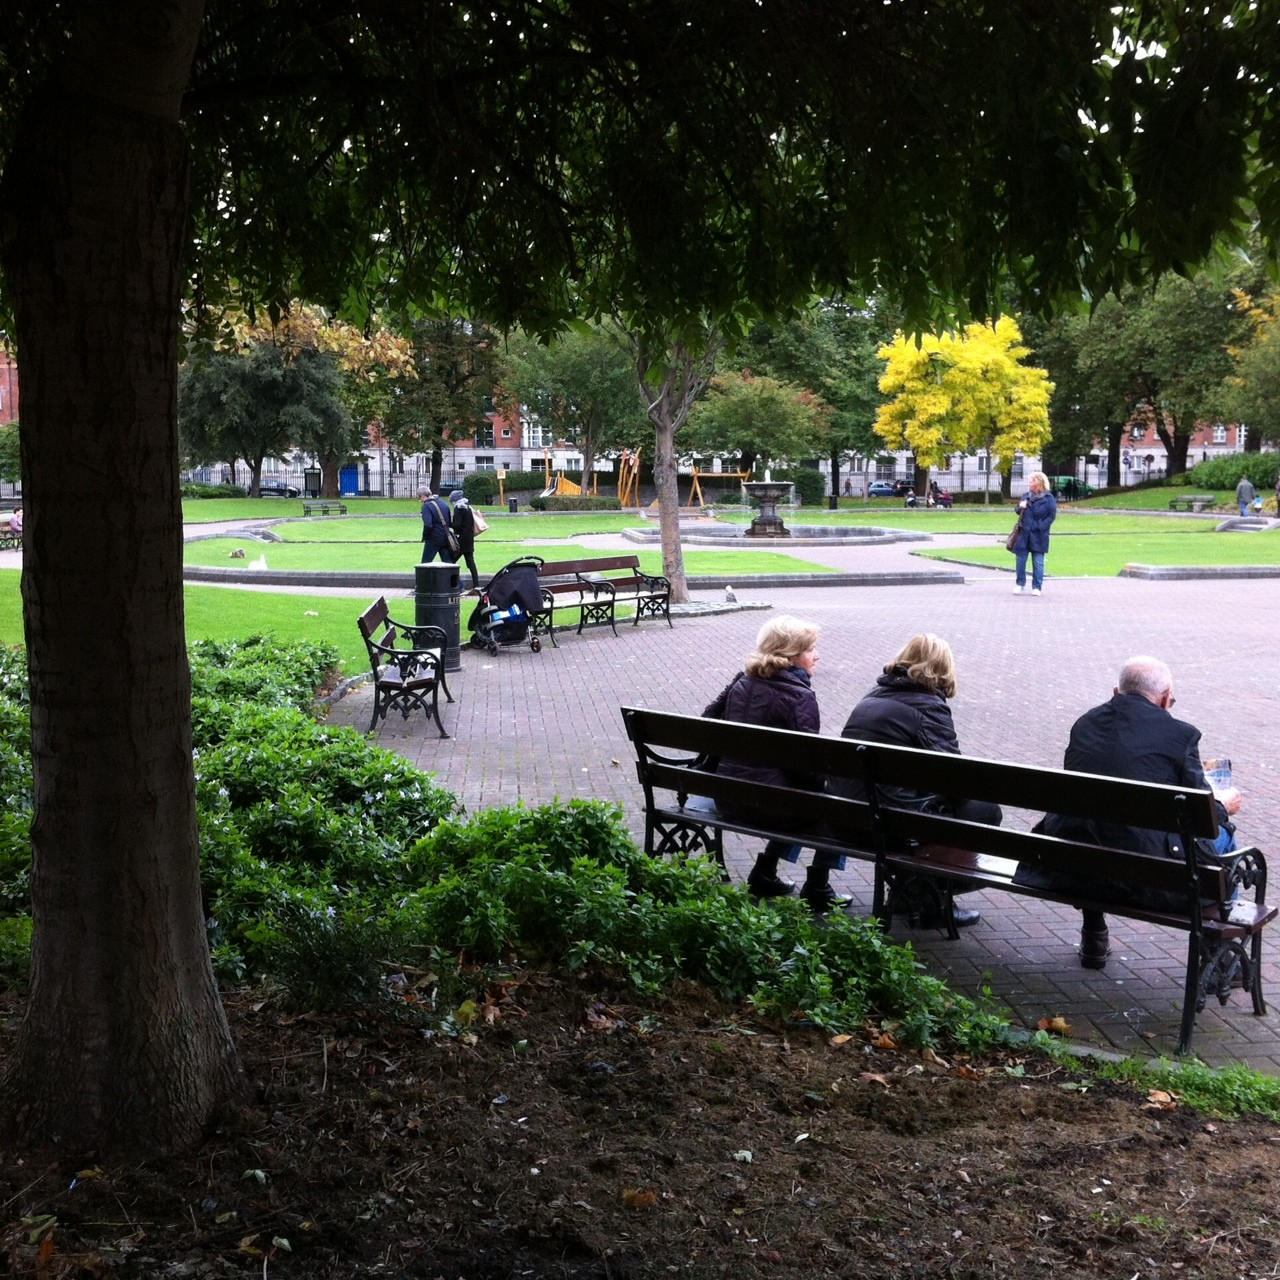 Parks and public space should invite people to sit and linger.